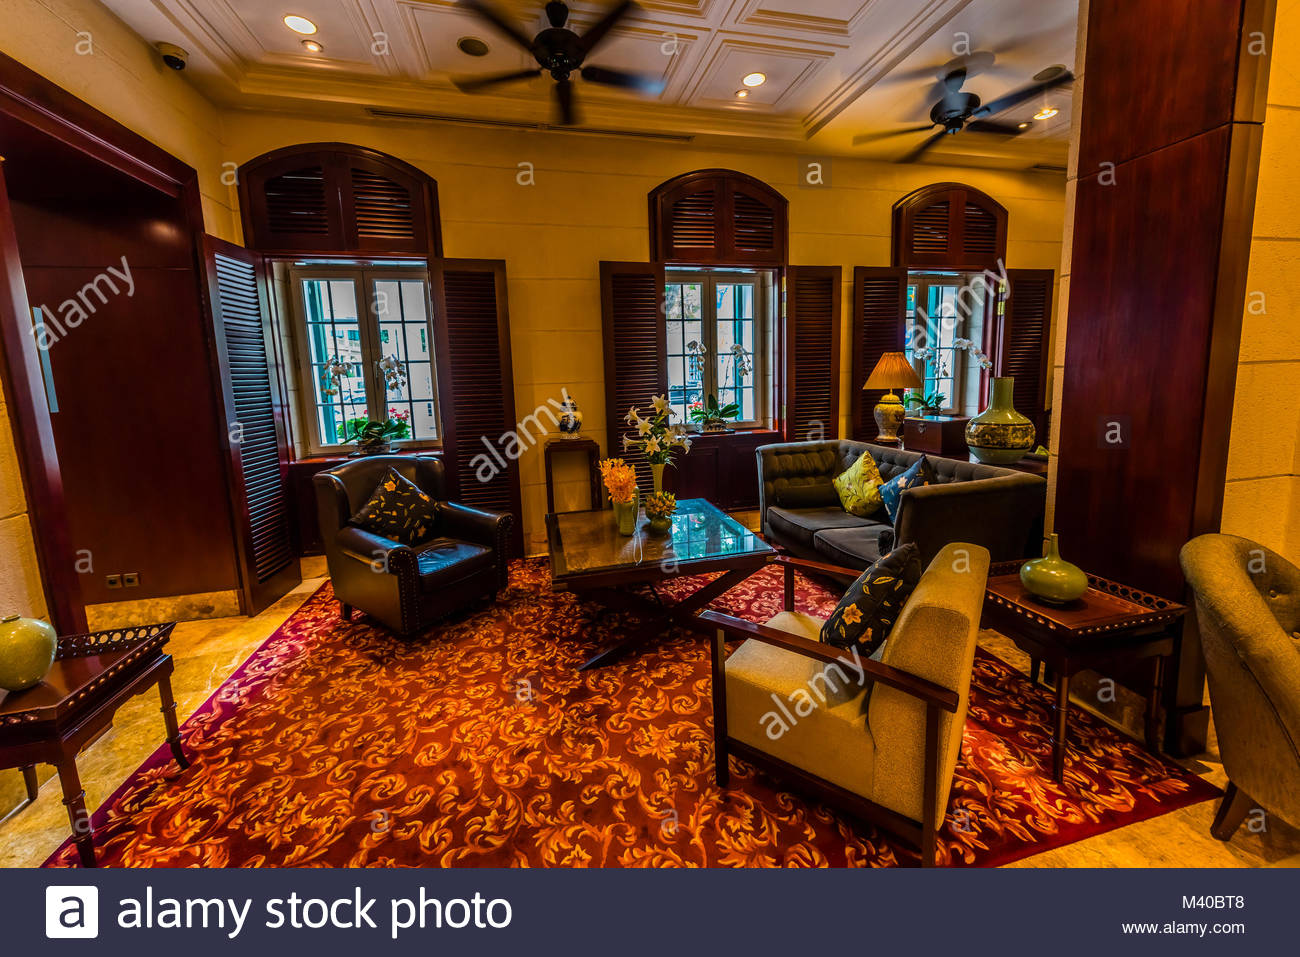 In the lobby of the Sofitel Legend Metropole Hanoi is a 5 star historic luxury hotel opened in 1901 in the French - Stock Image